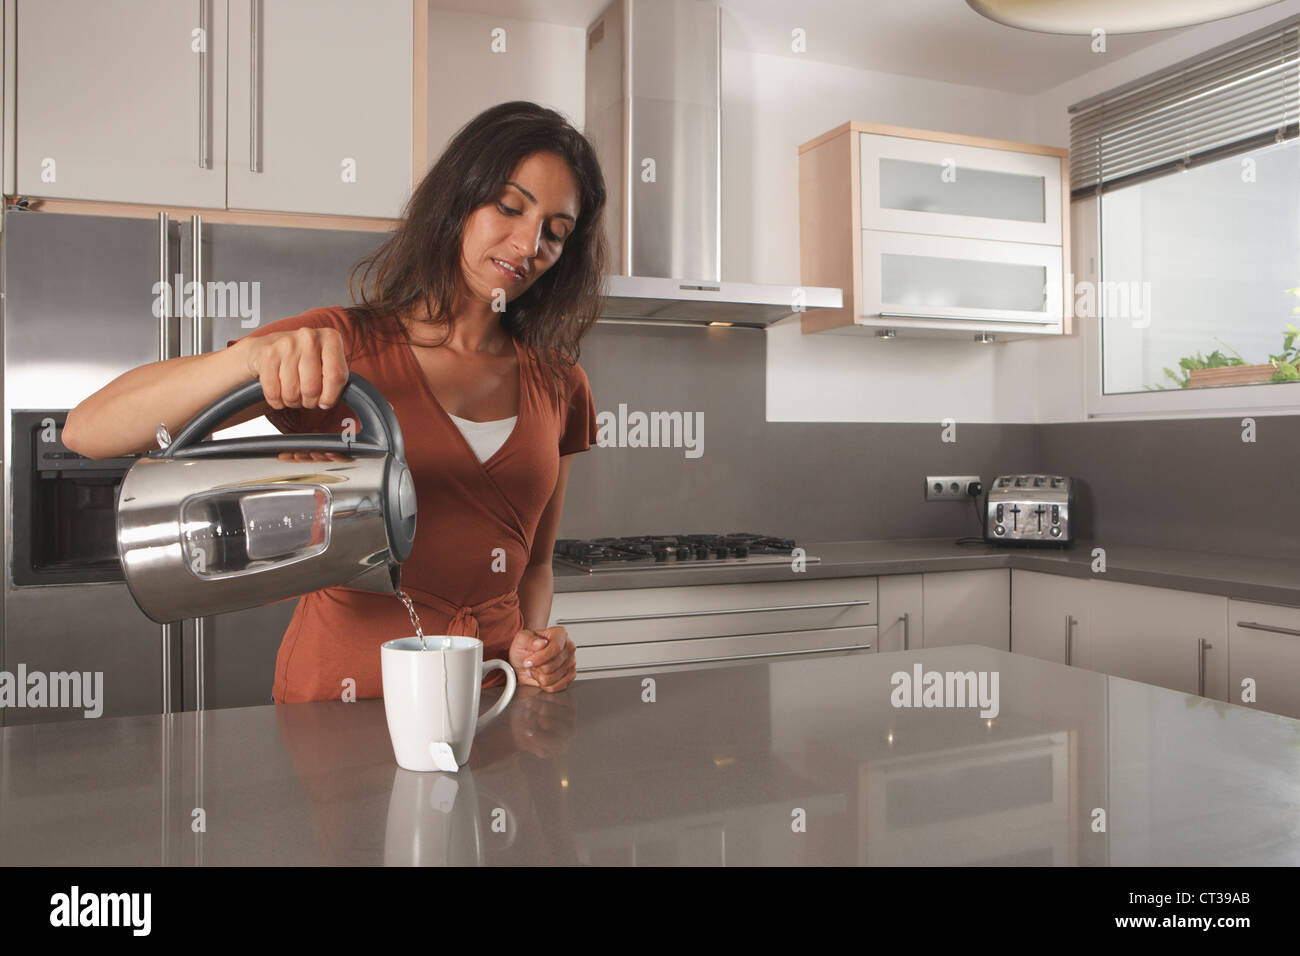 Woman making cup of tea in kitchen - Stock Image